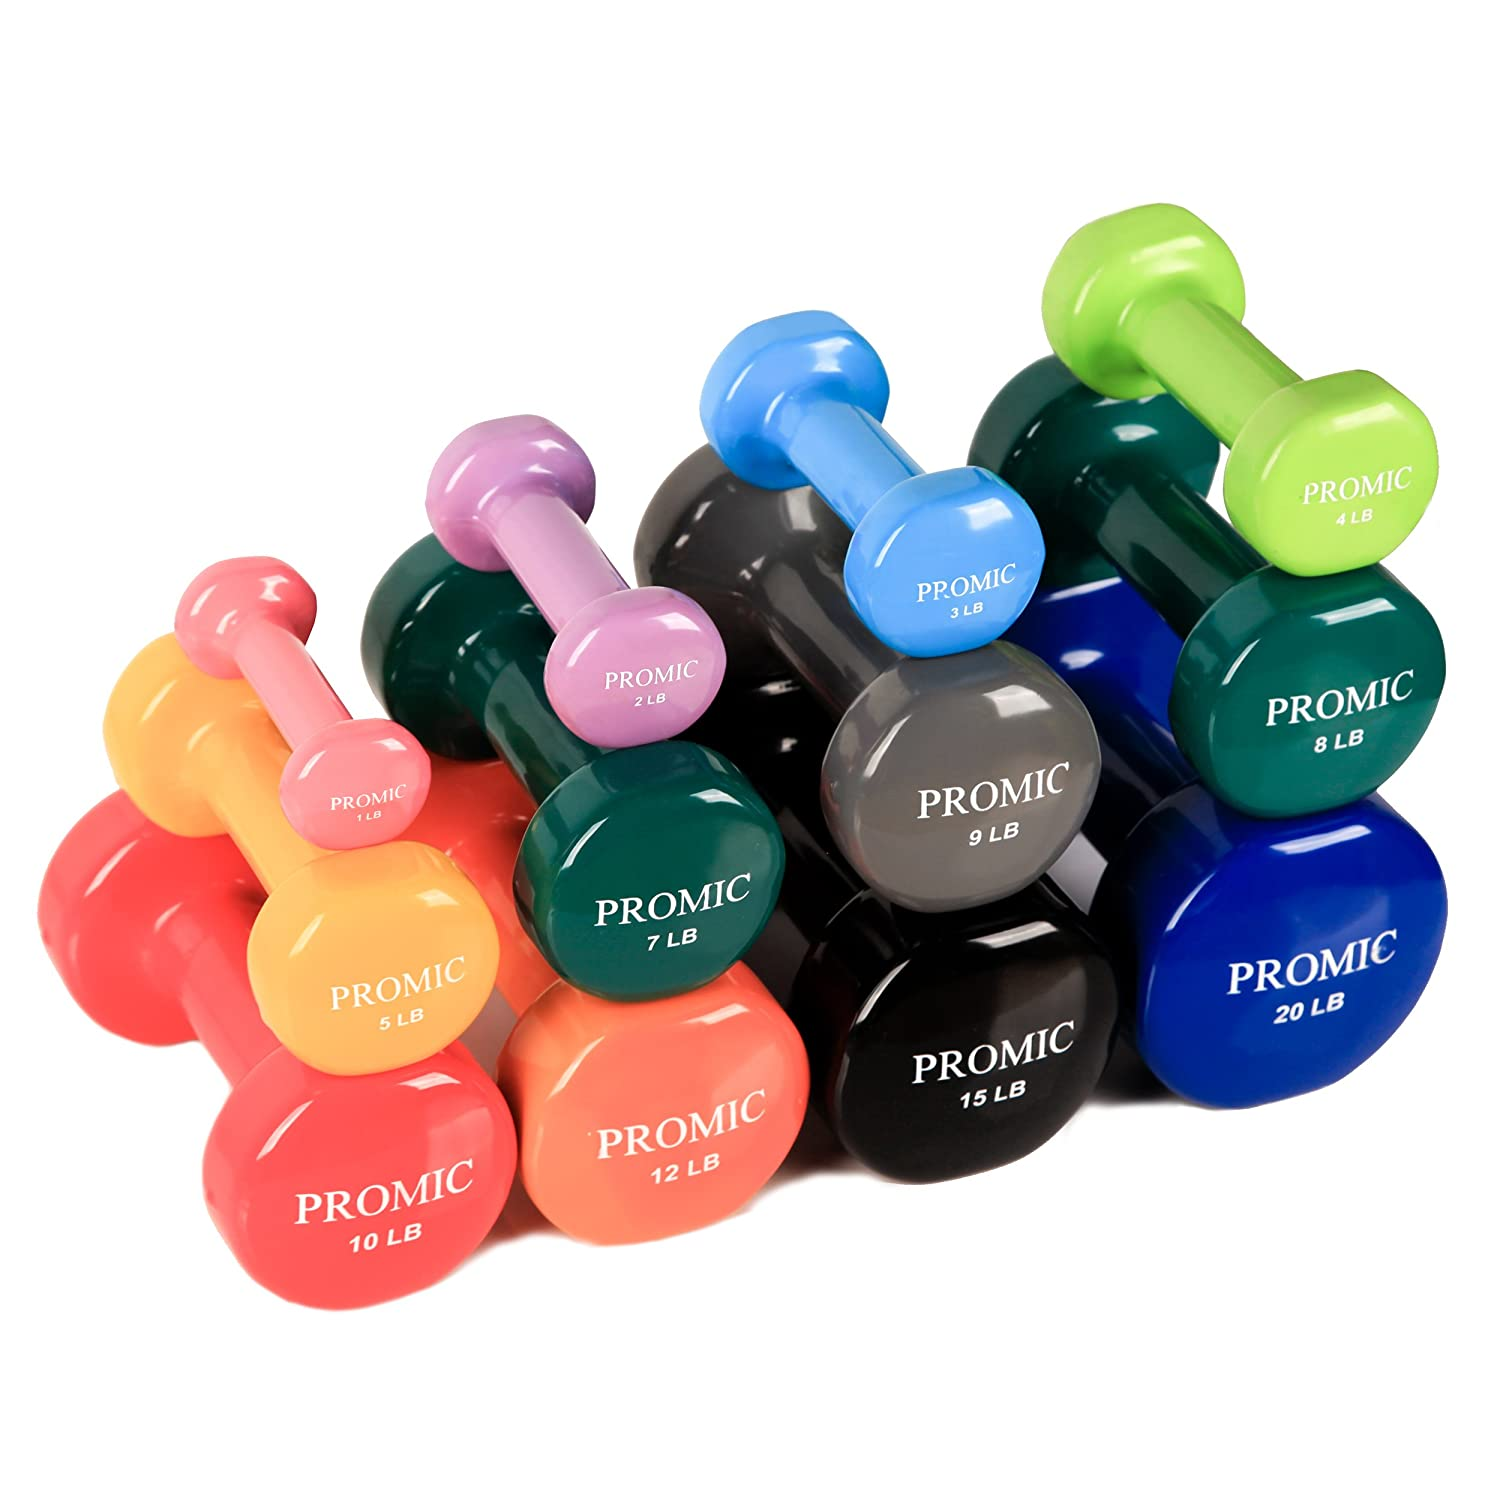 Amazon.com : PROMIC 1lb to 20lb Hand Weights Deluxe Vinyl Coated Dumbbells  (Sold in Pair) - Non Slip, Multi Colors Available : Sports & Outdoors